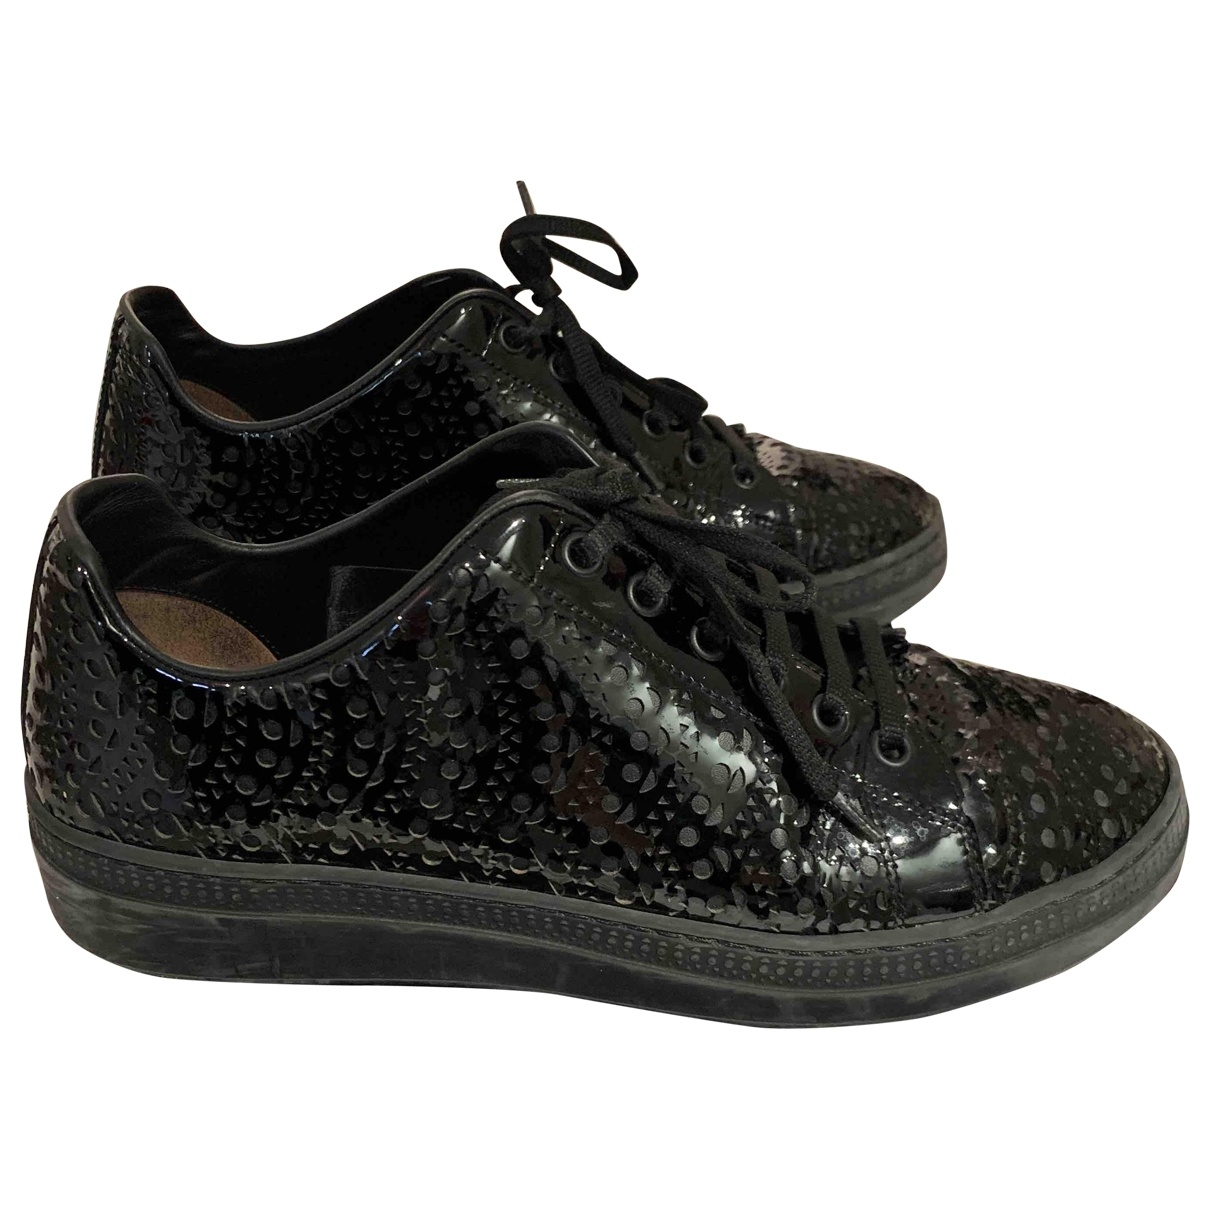 Alaïa \N Black Patent leather Trainers for Women 38 EU